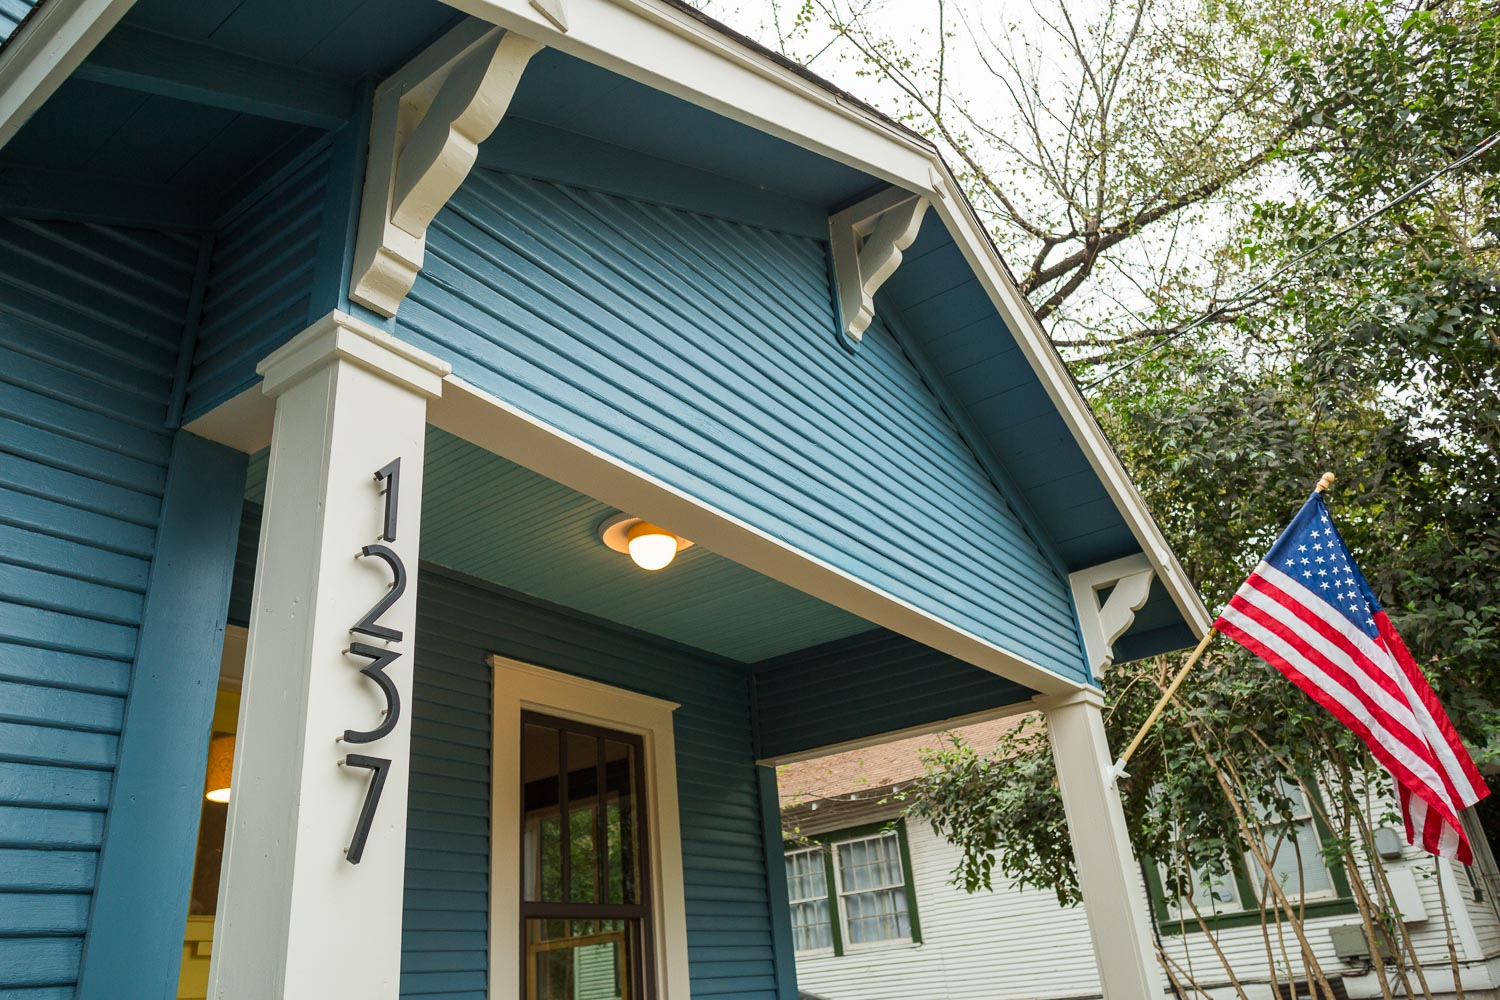 Traditional bungalow porch with thoughtful detailing and the American flag. This bungalow is an American Craftsman classic now!